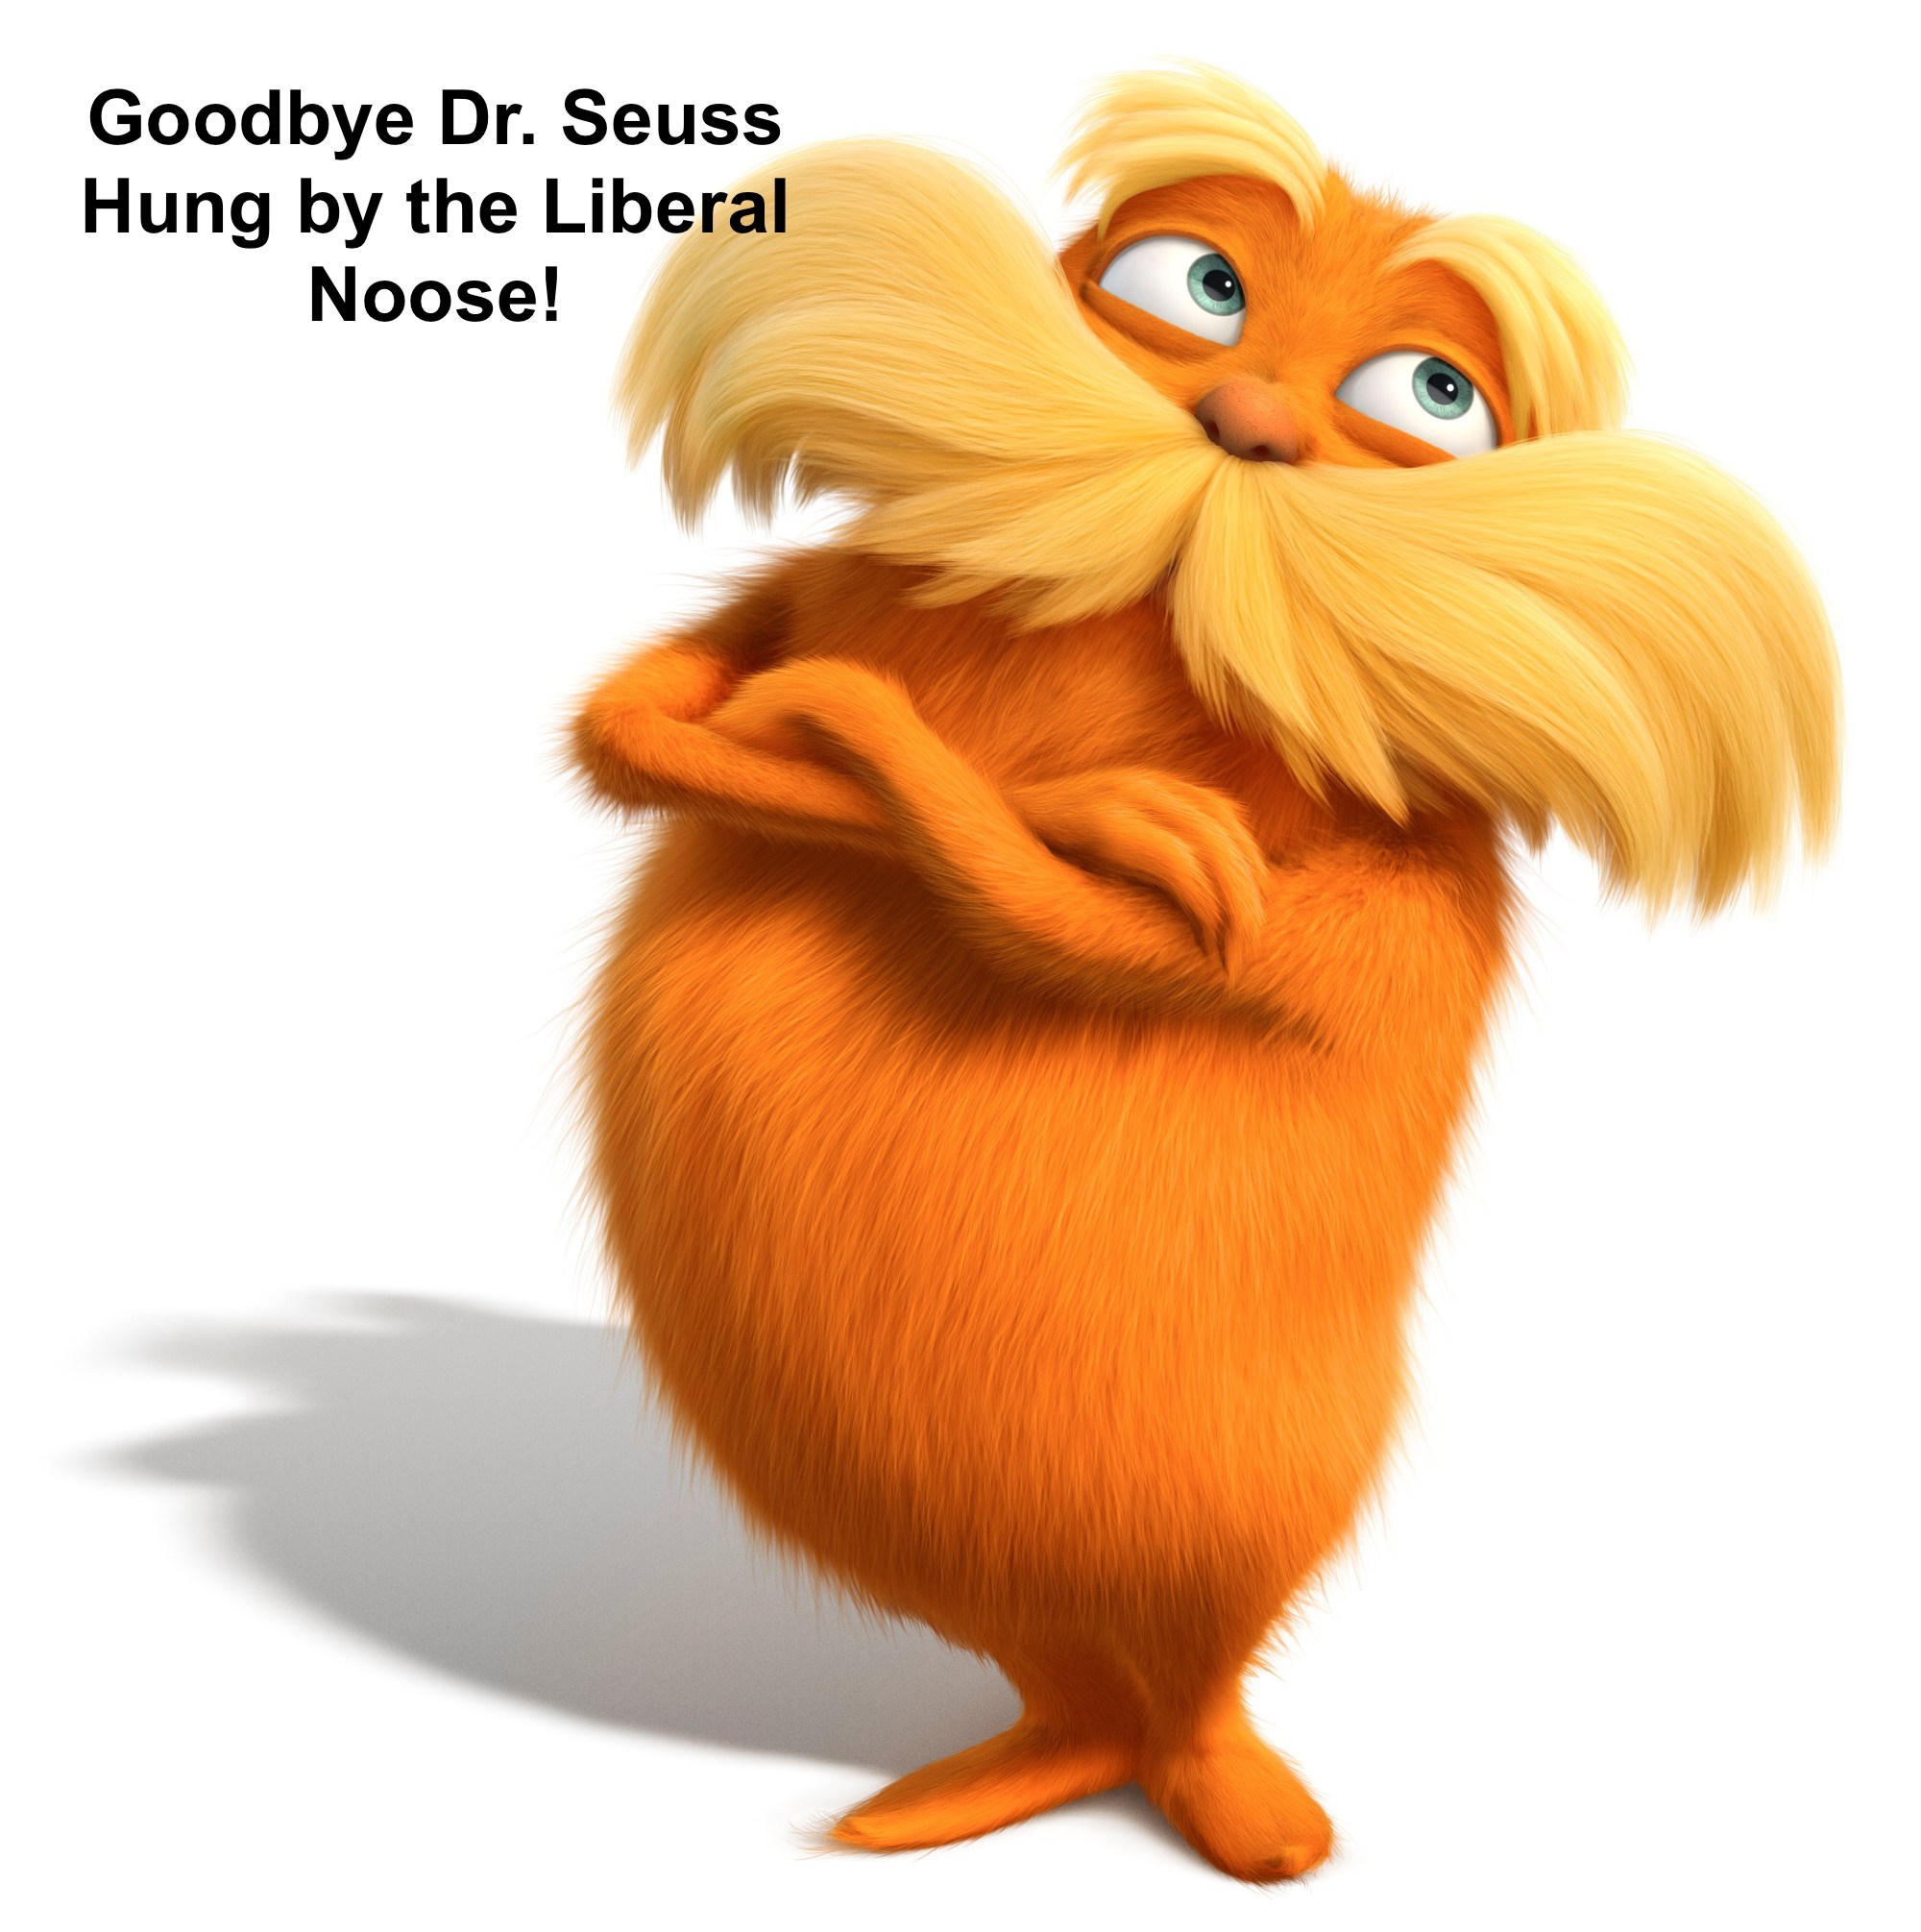 DR. SEUSS THE LORAX, THE THNEED AND THE LIBERAL MISDEED.  GOODBYE DR. SEUSS, HELLO LIBERAL NOOSE